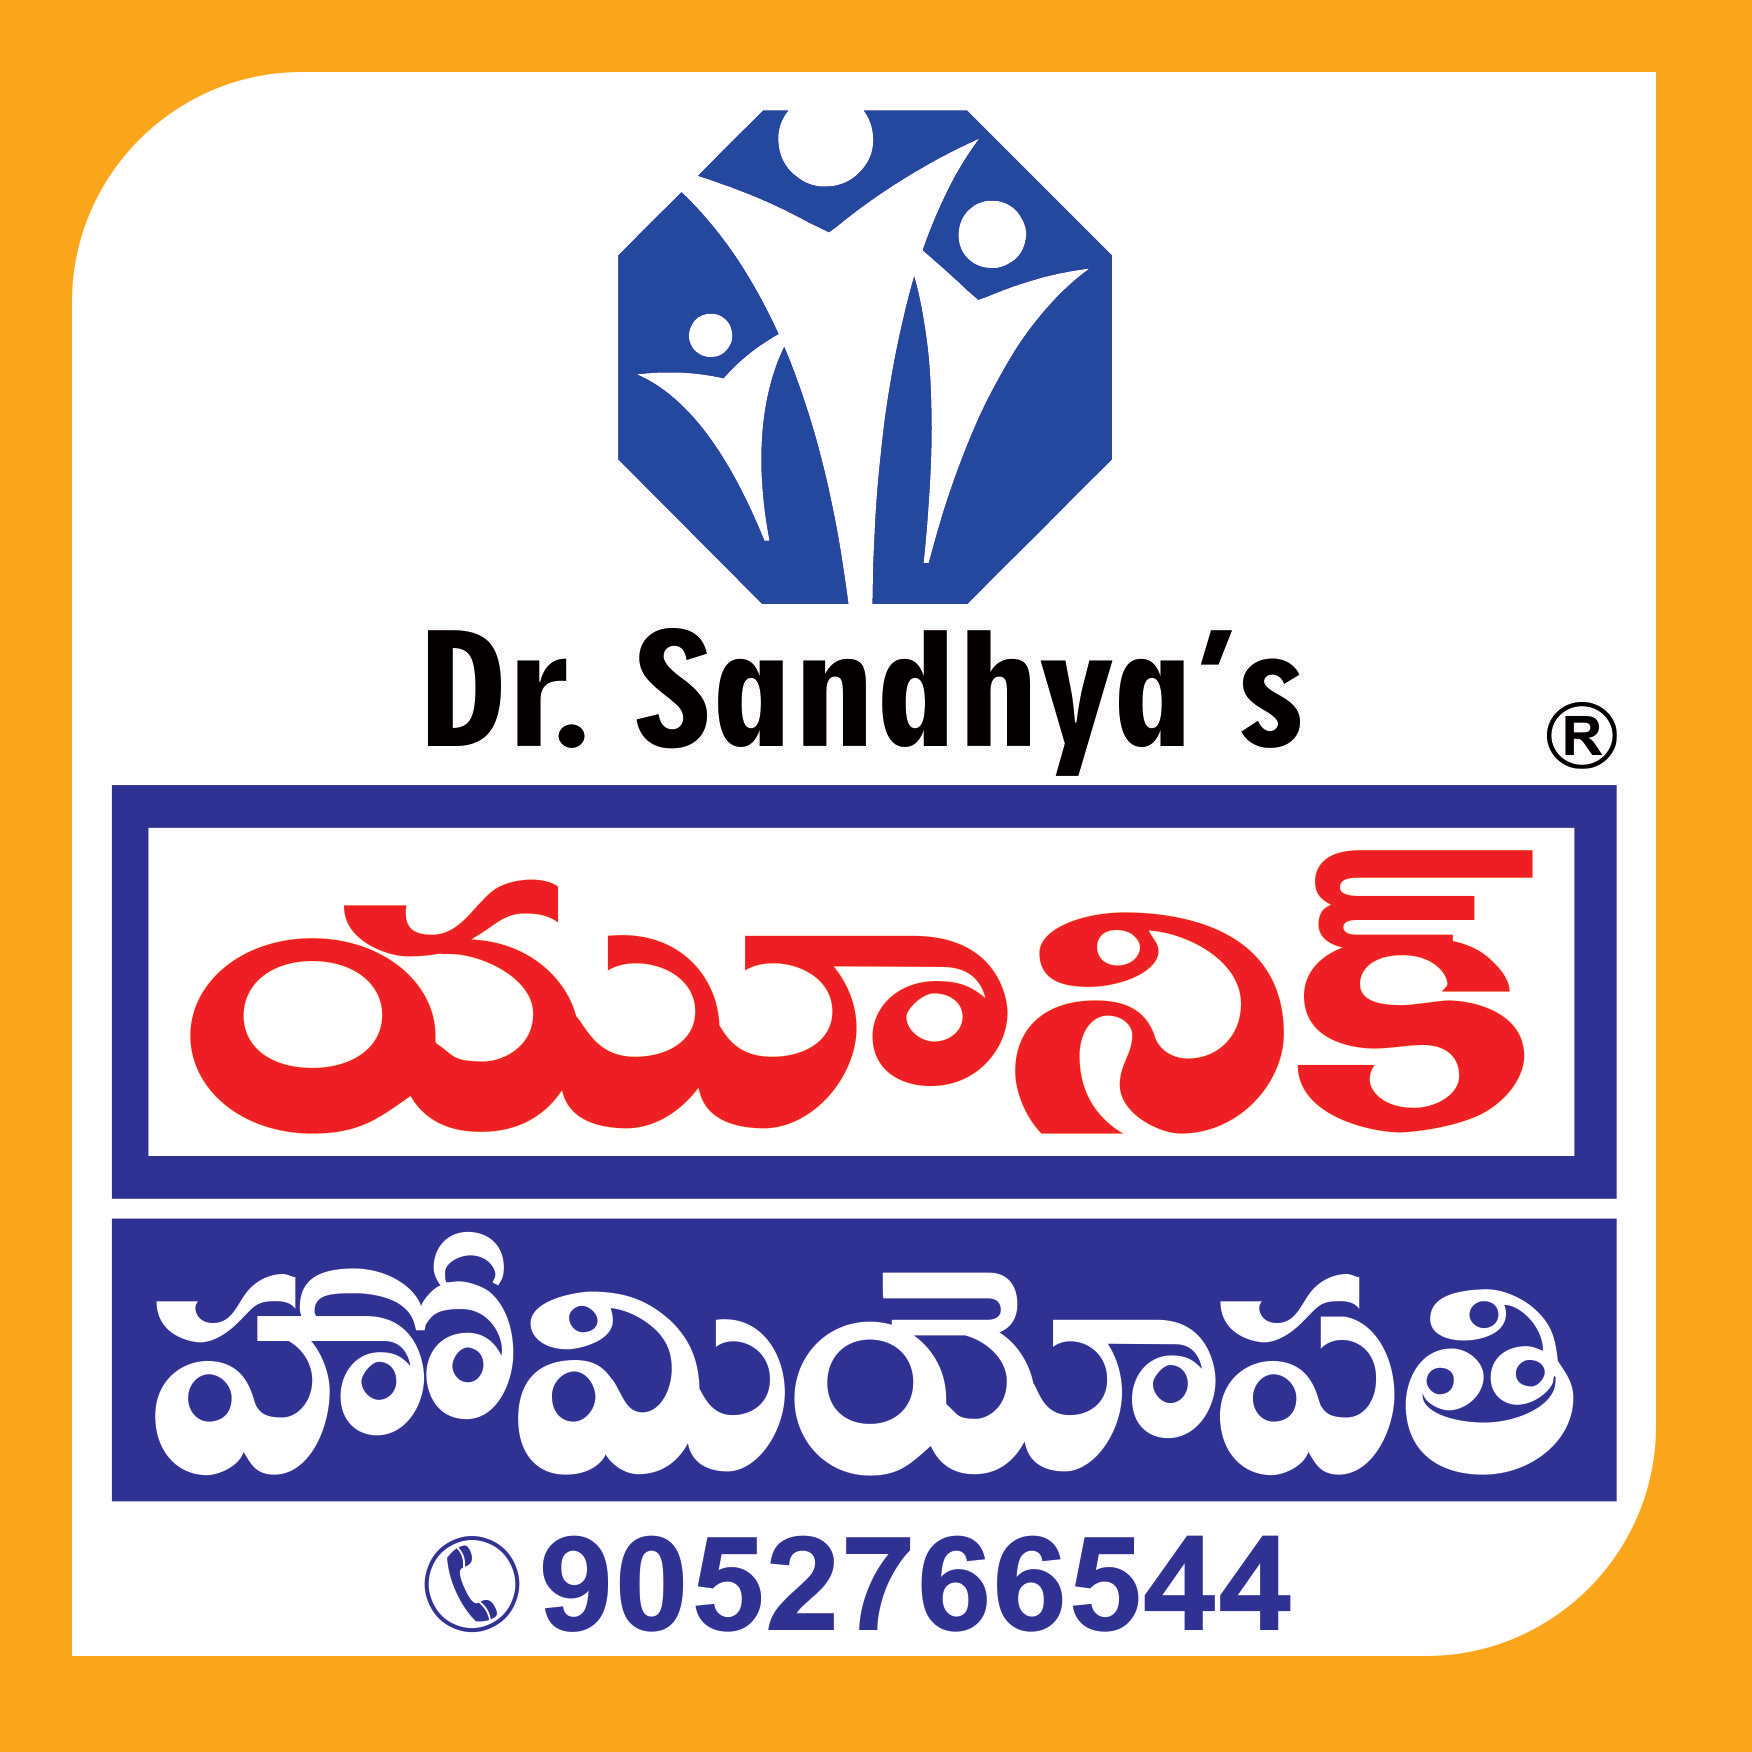 Dr. Sandhya's Diabetes Homeopathy Center